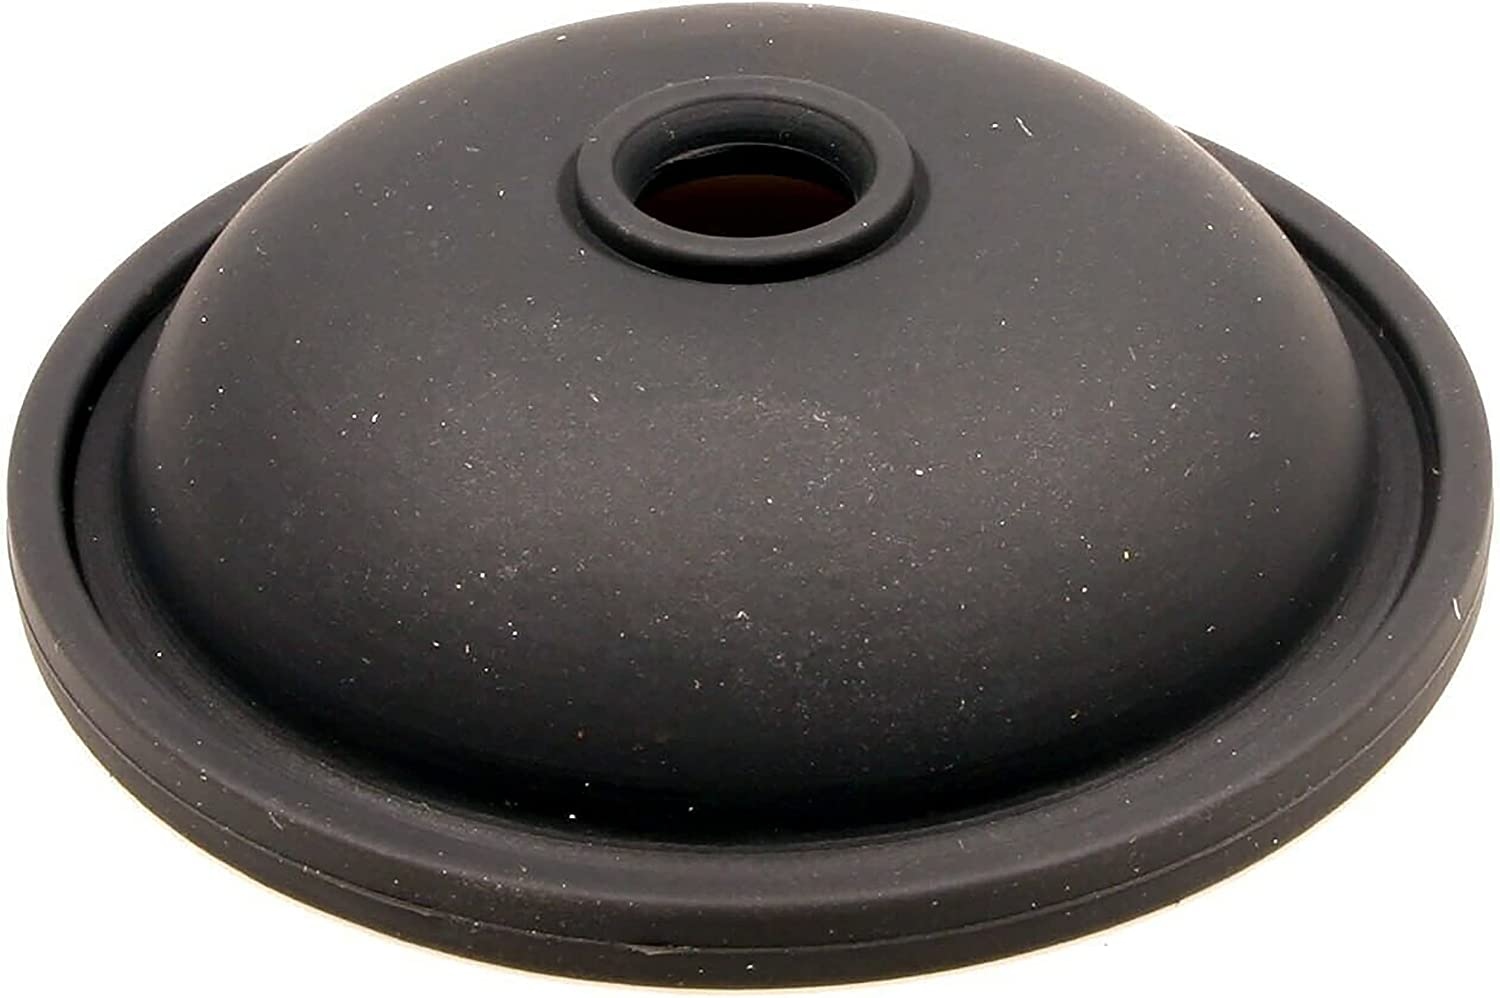 Exhaust Valve Bellow fits - Sales 600 2001 Pro-X Manufacturer regenerated product Replacement 3086119